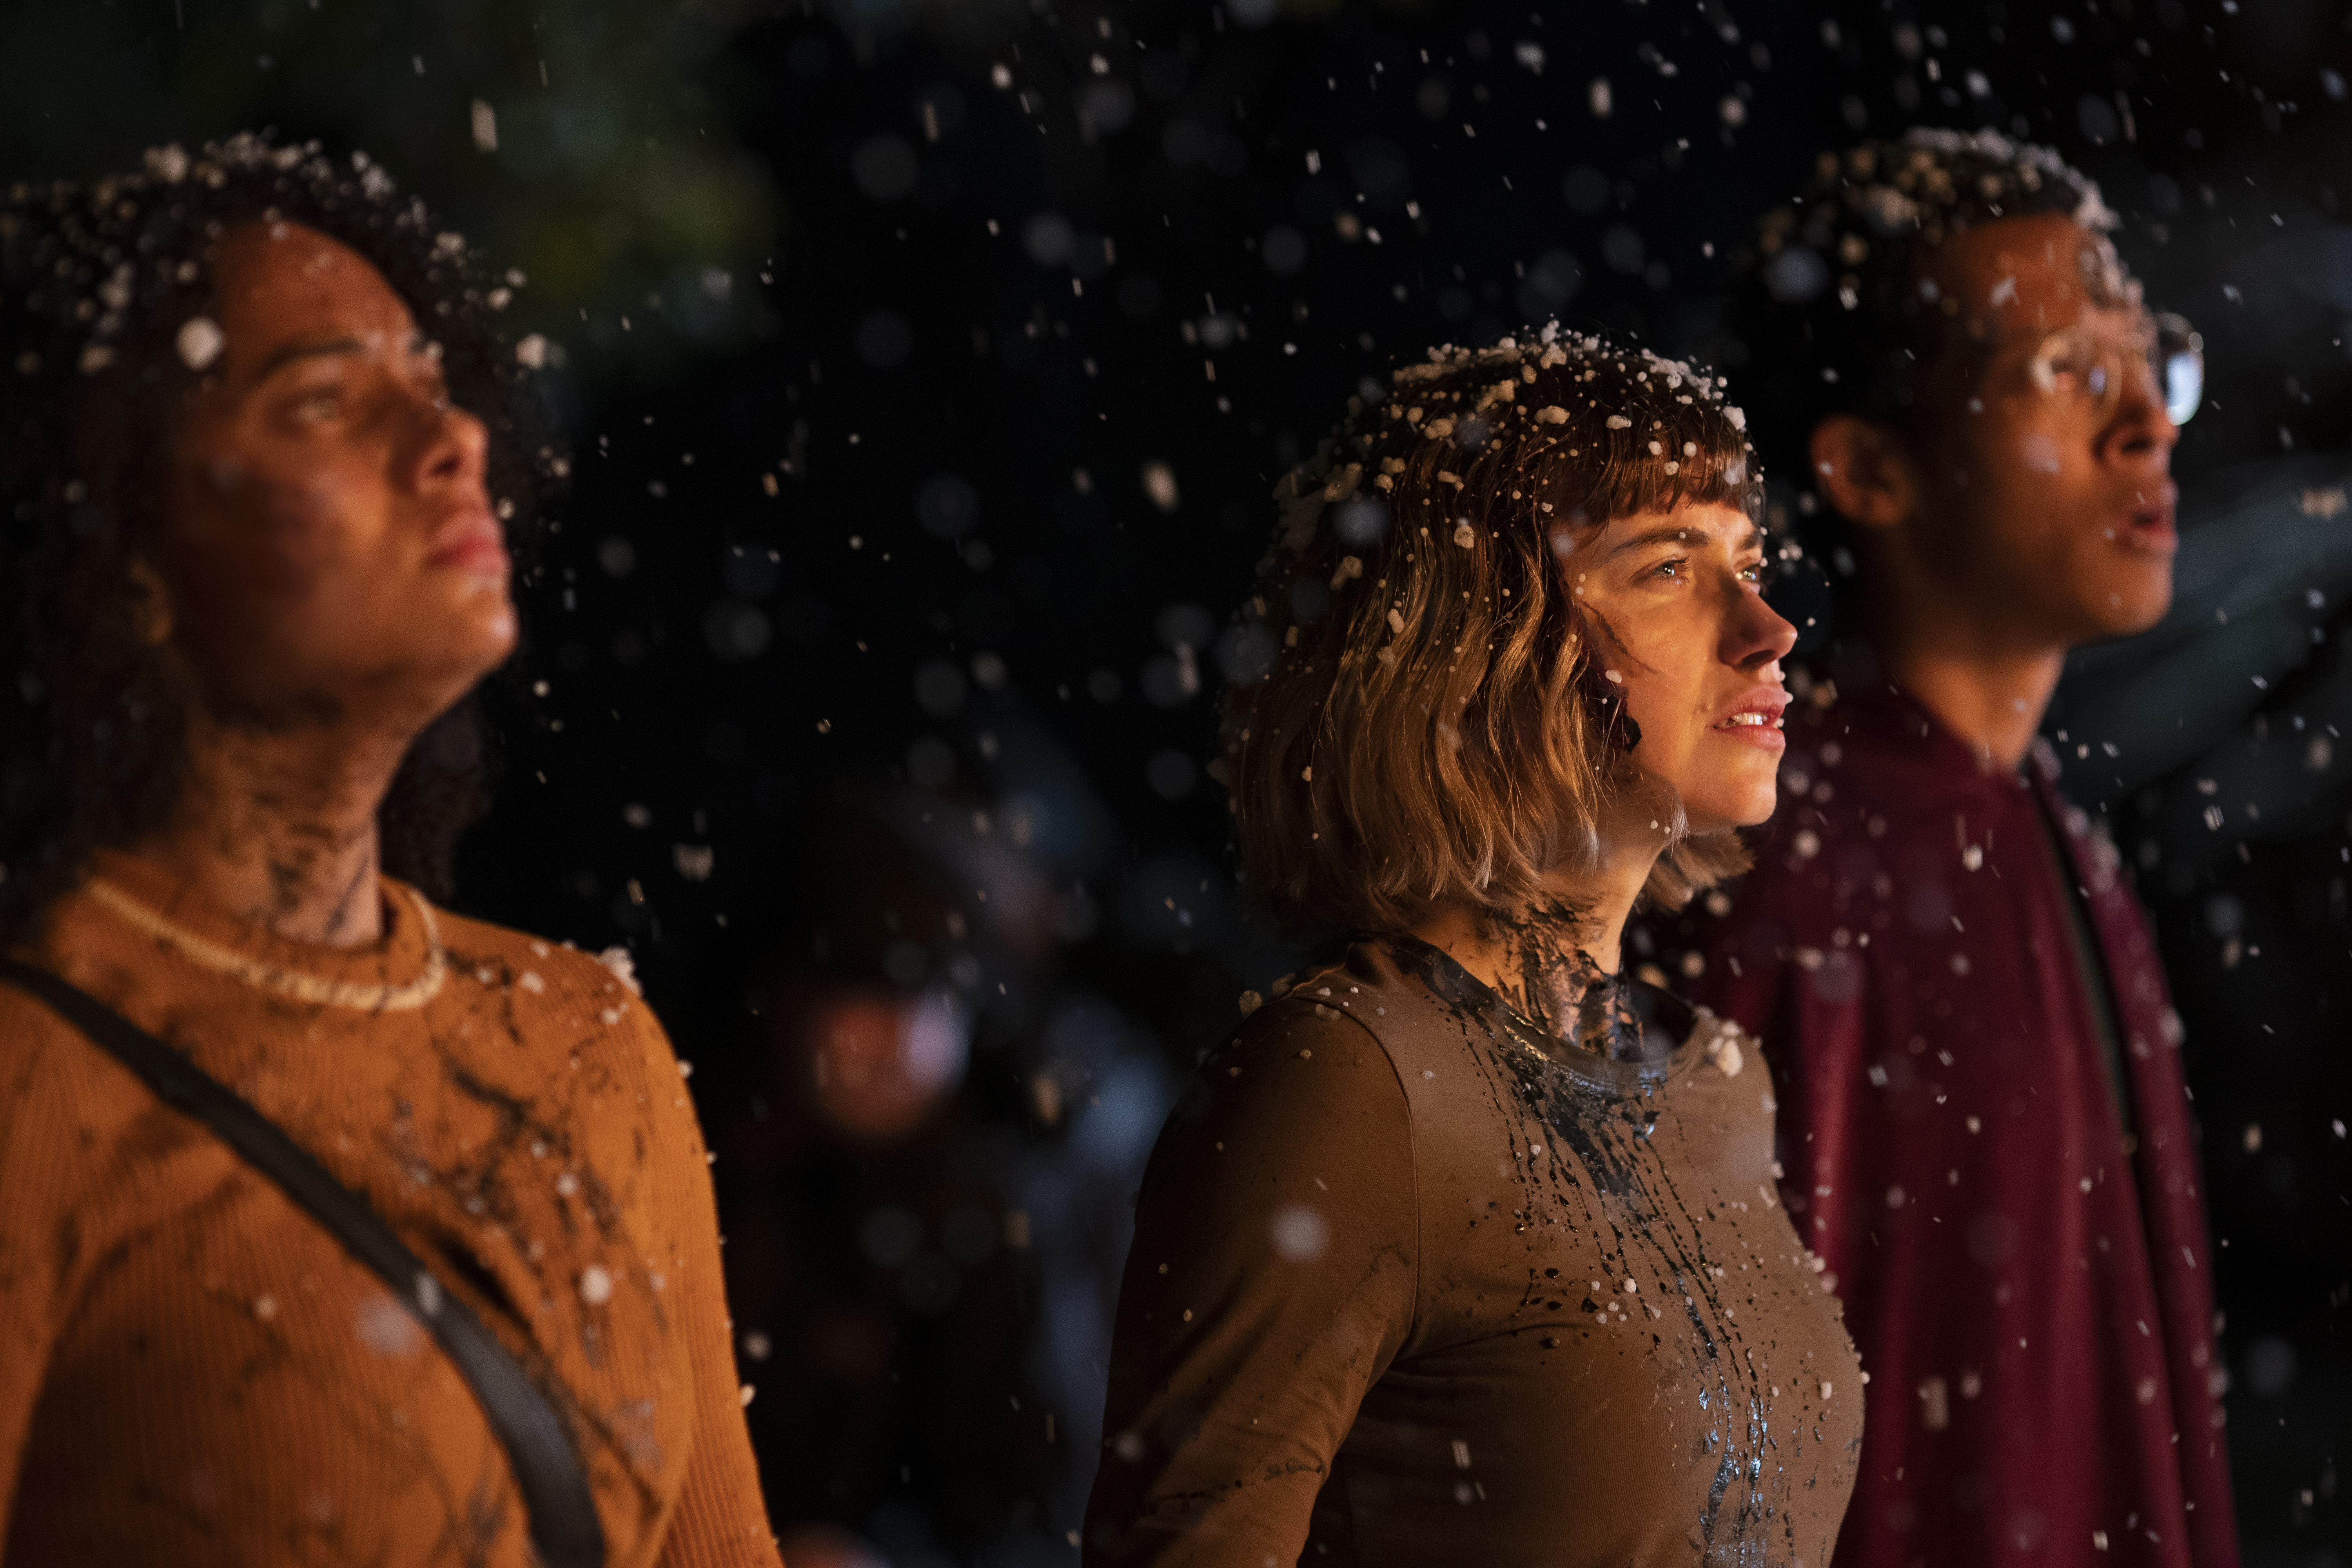 """(from left) Kris (Aleyse Shannon), Riley (Imogen Poots) and Landon (Caleb Eberhardt) in """"Black Christmas,"""" co-written and directed by Sophia Takal."""